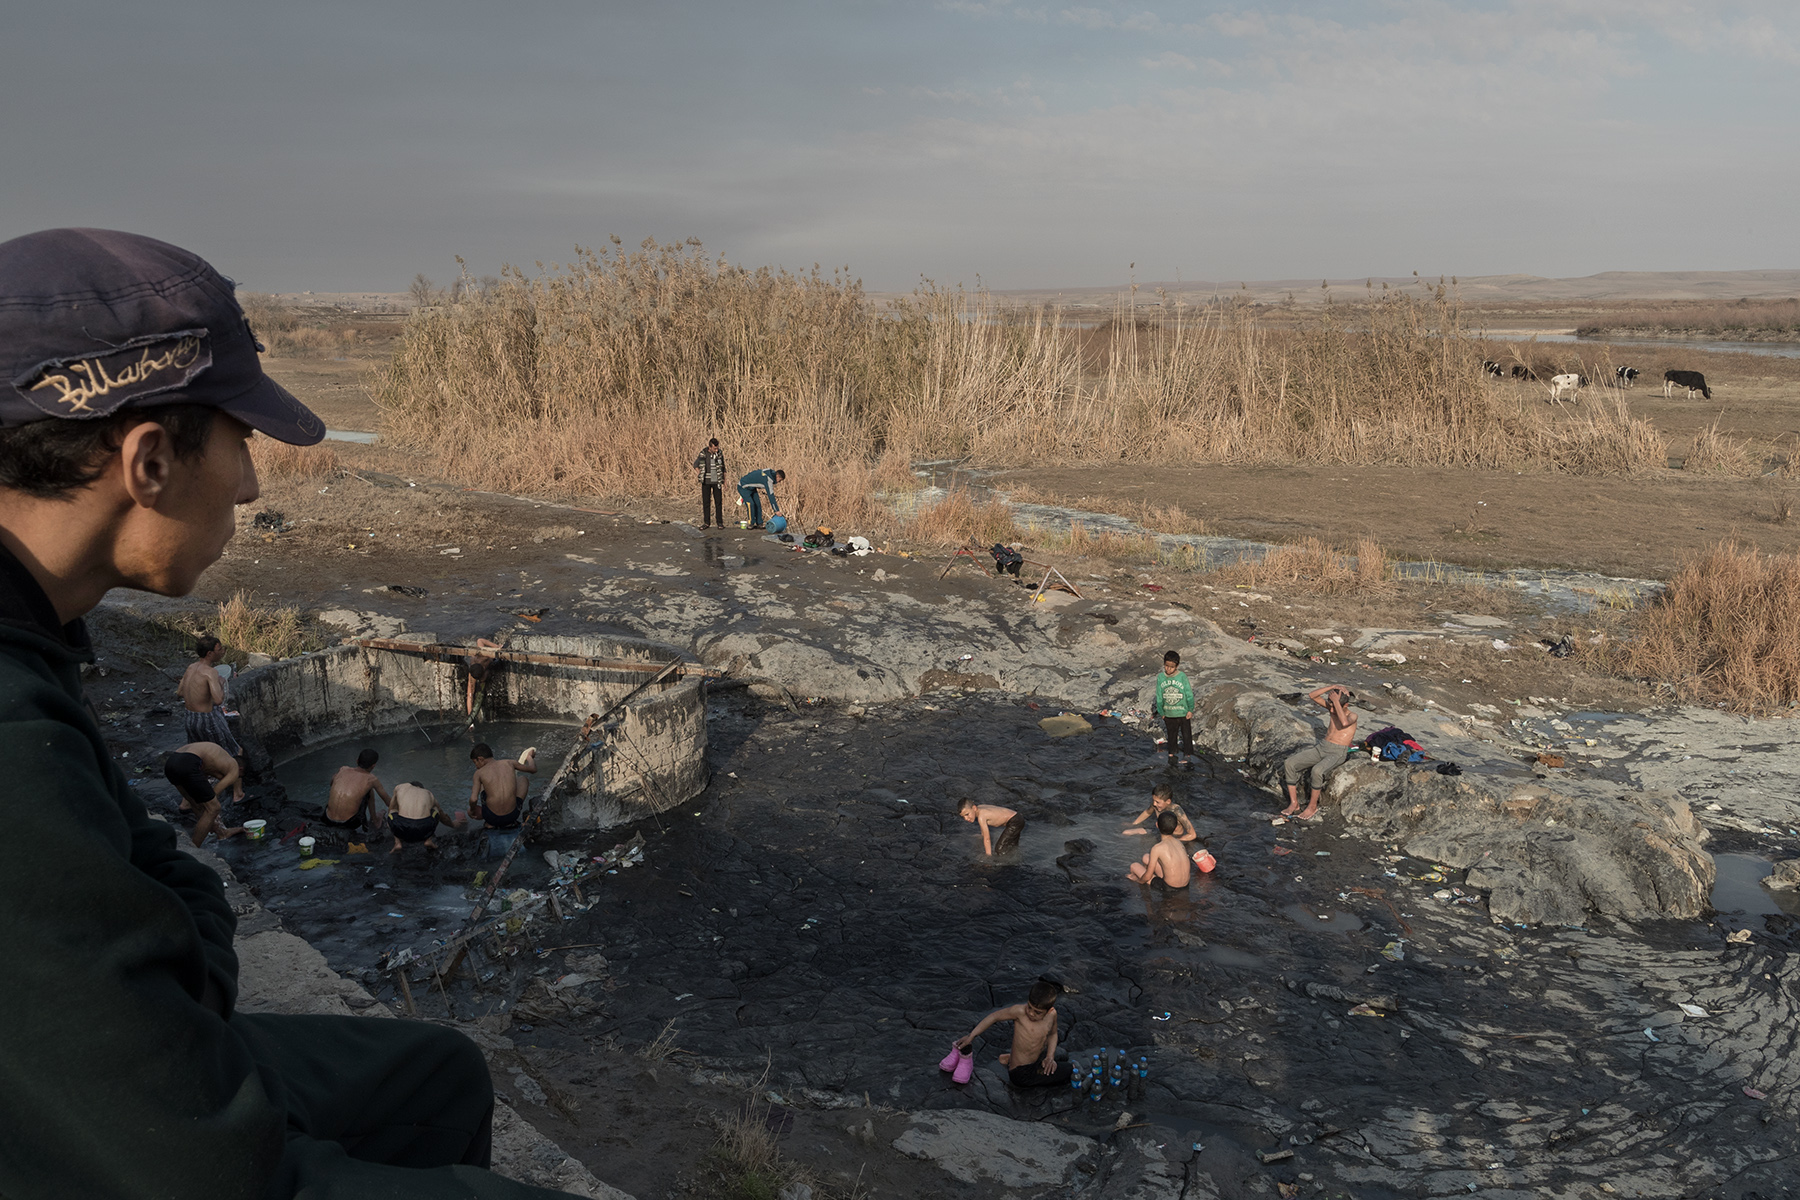 Sulphured waters smoke in concrete vats on the edges of the Tiger, in the thermal city of Hammam al-Alil, Iraq on Jan. 8, 2017. Men and boys gather there to wash themselves and to play.